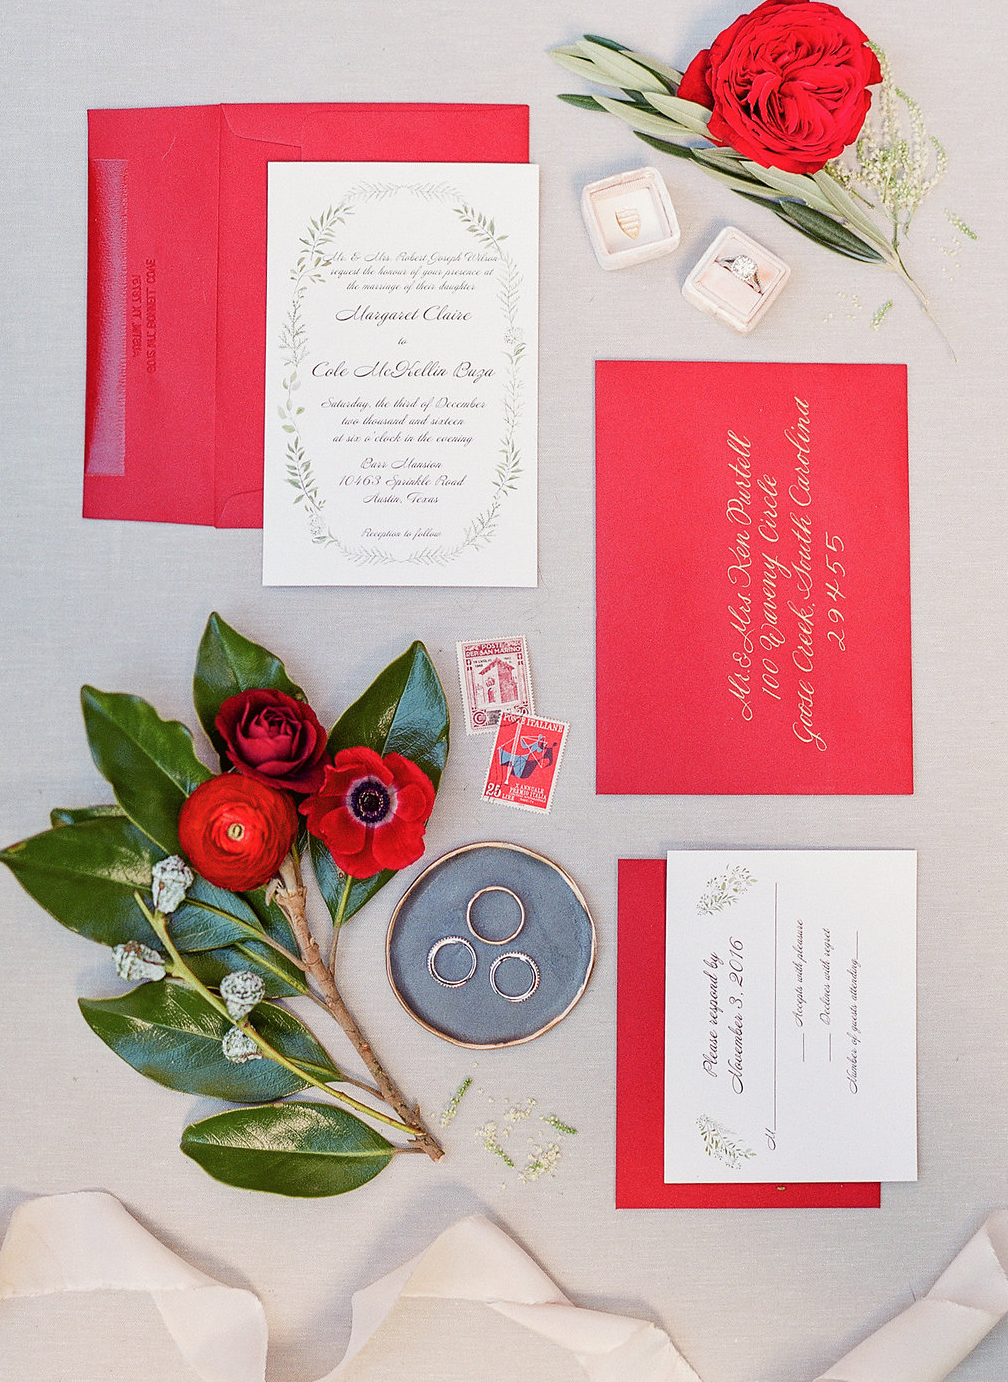 Wedding Invitations - Red Accents